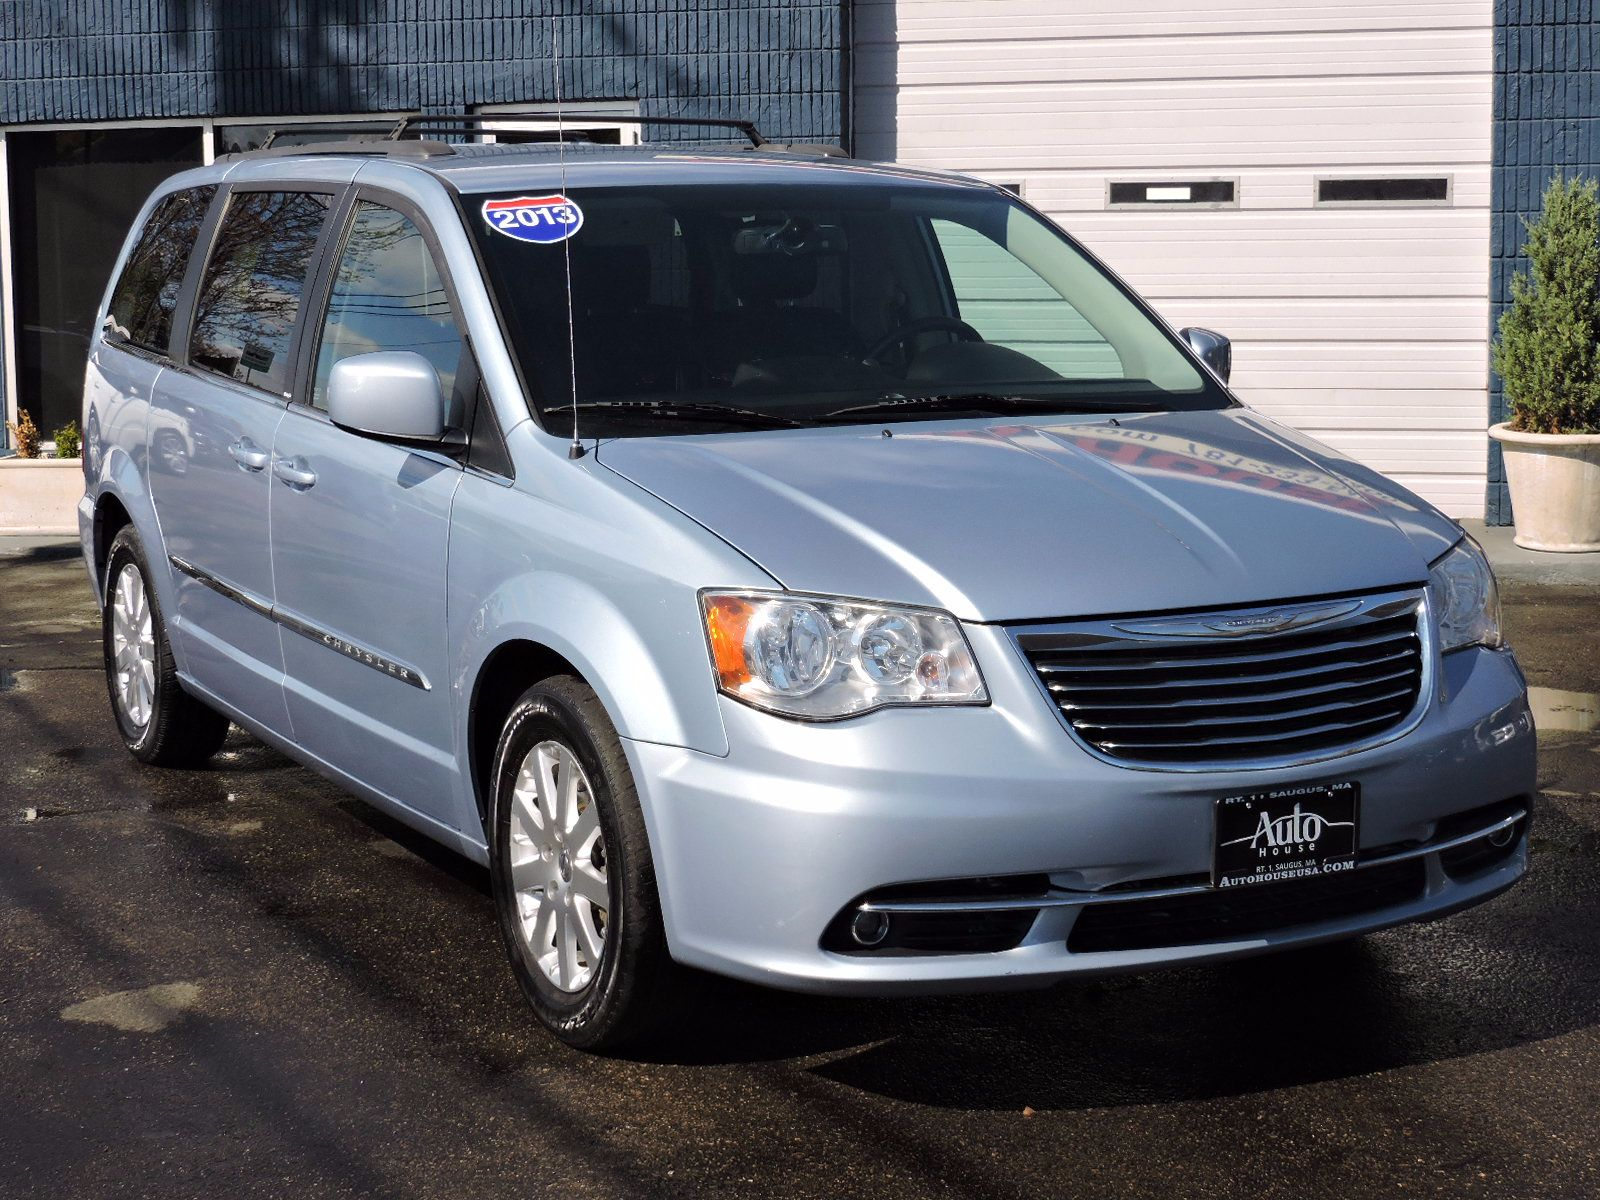 2013 Chrysler Town & Country - Touring Edition